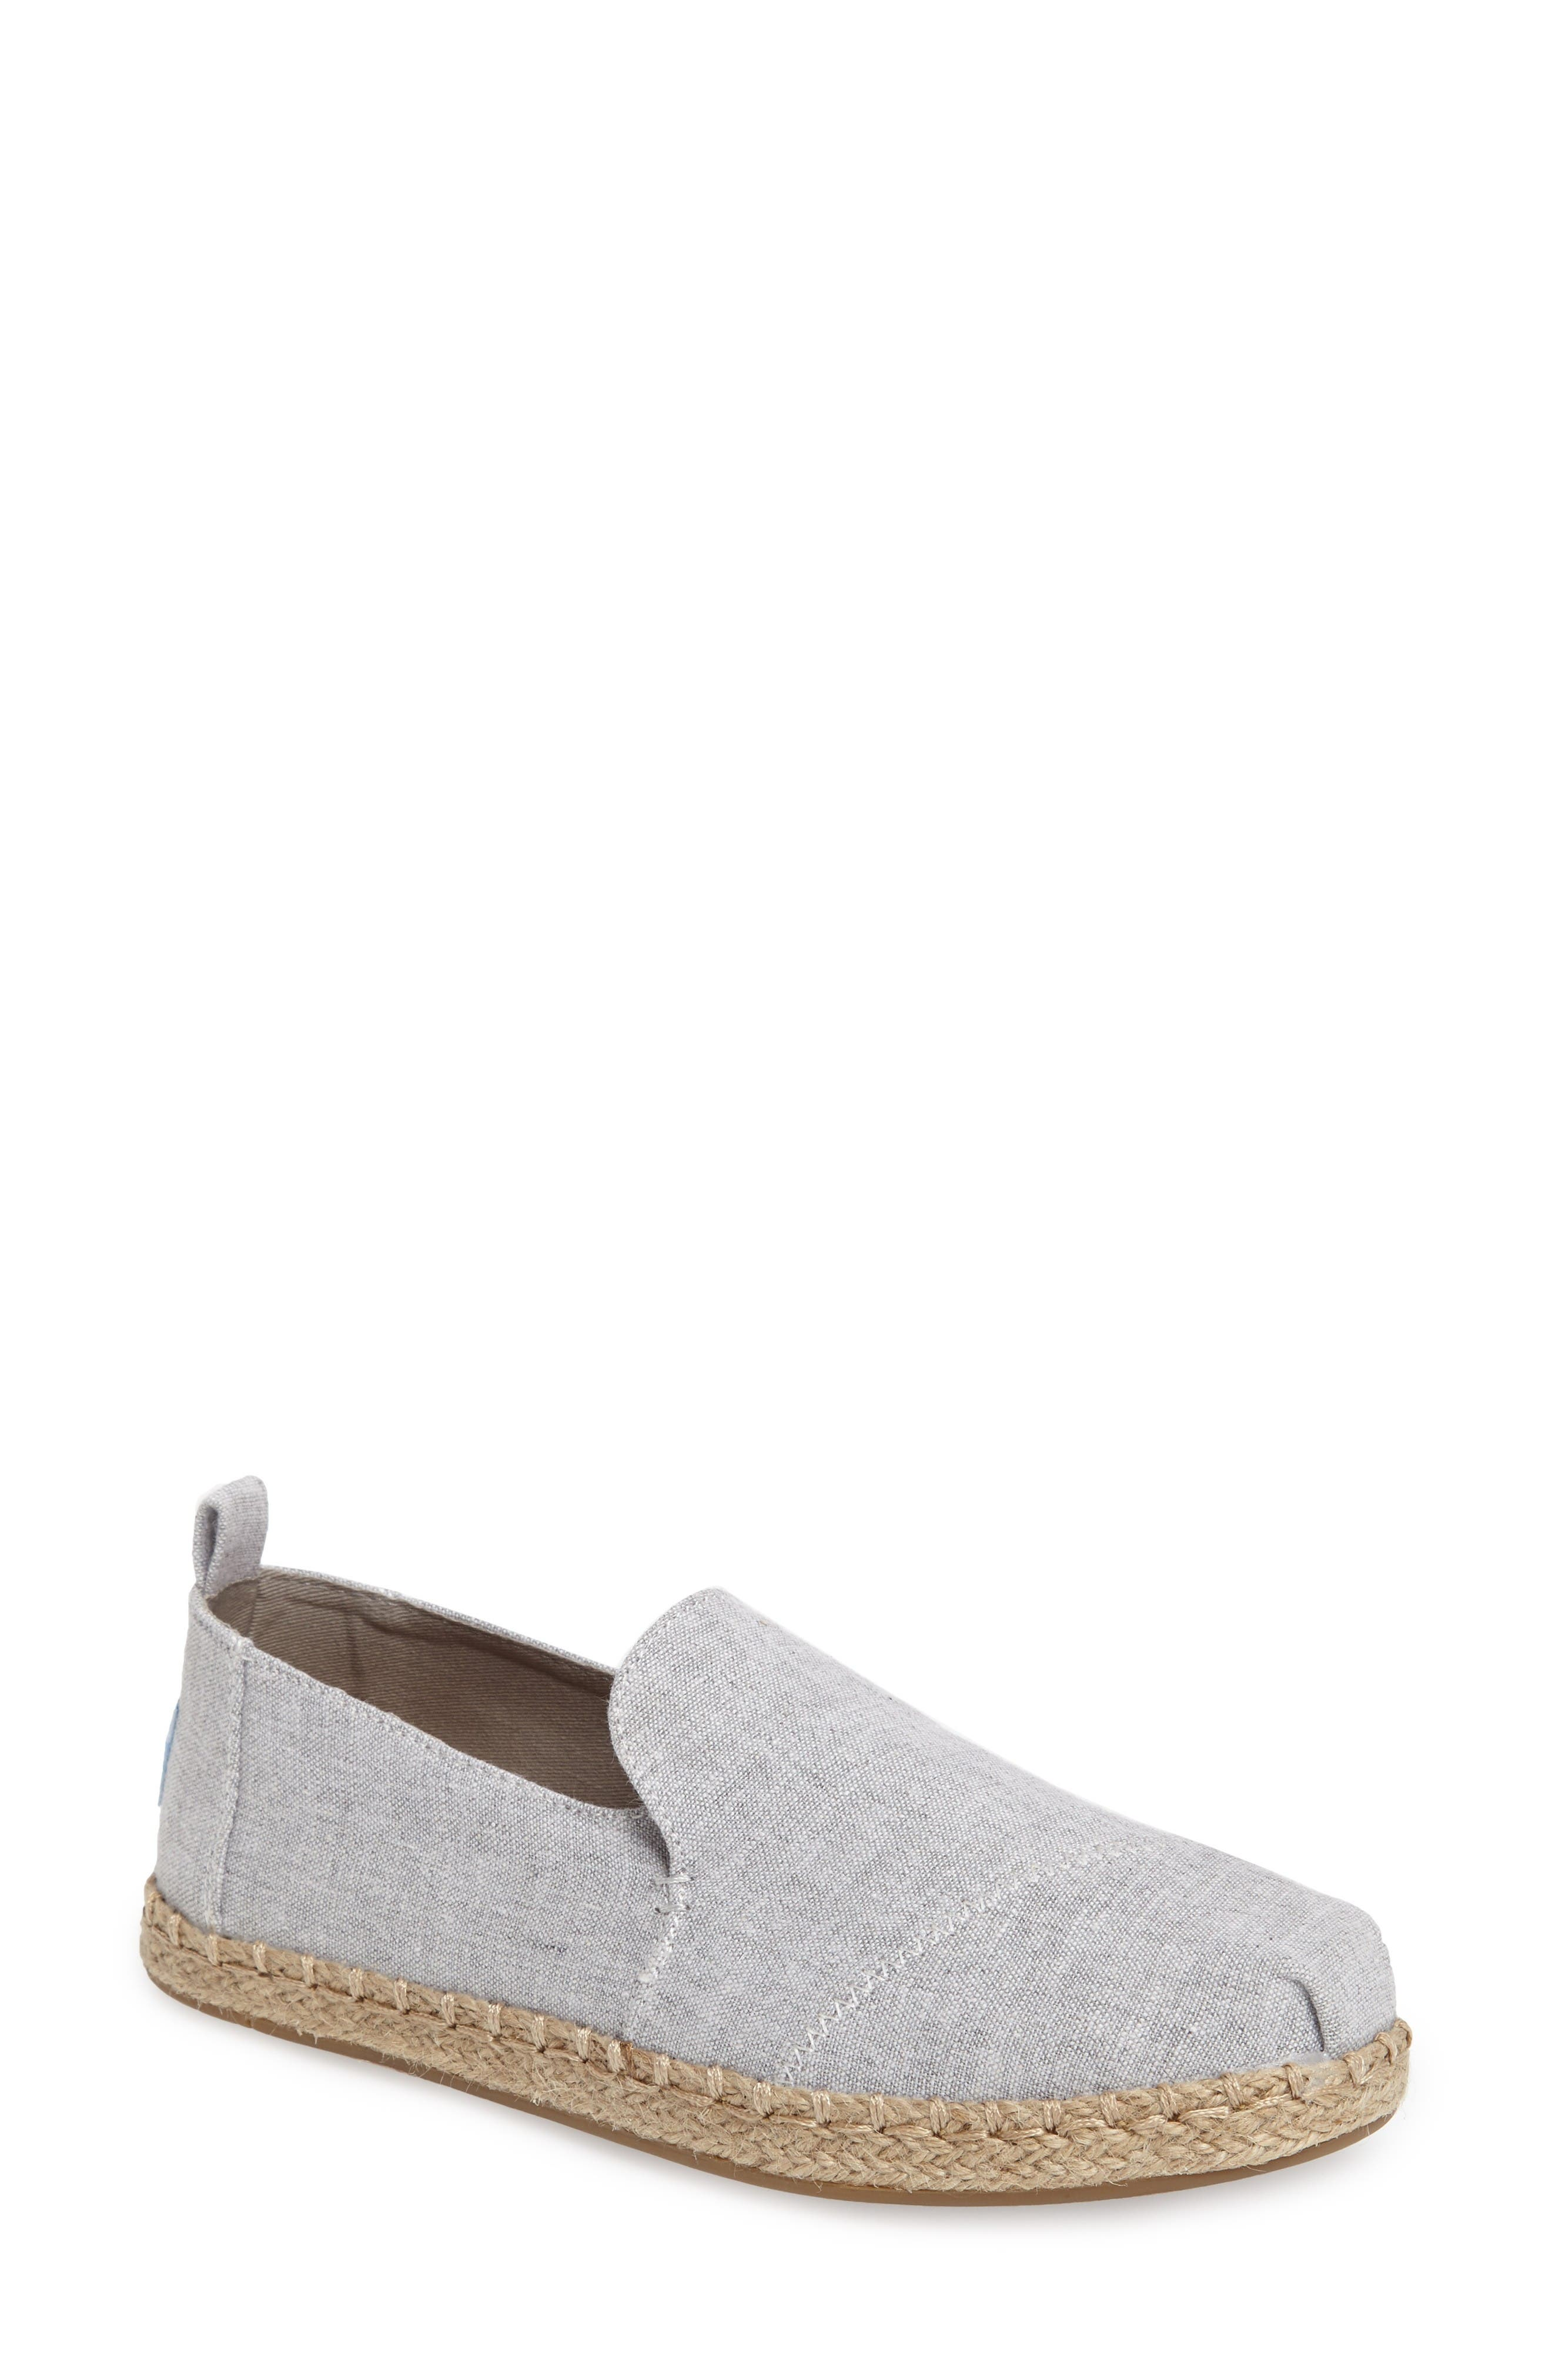 Espadrille Slip-On,                         Main,                         color, Grey